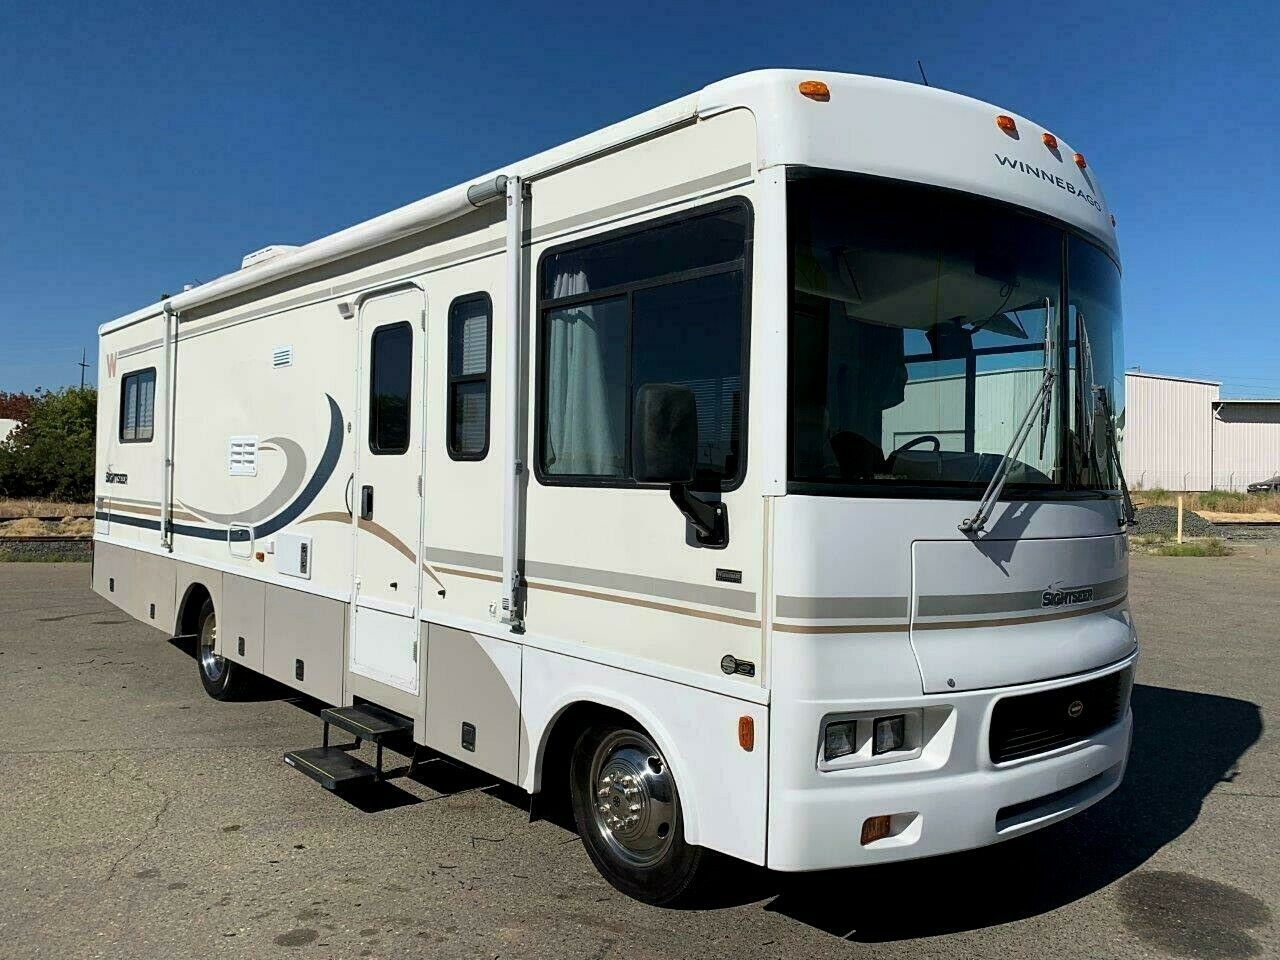 clean 2004 Winnebago Sightseer 30B camper for sale